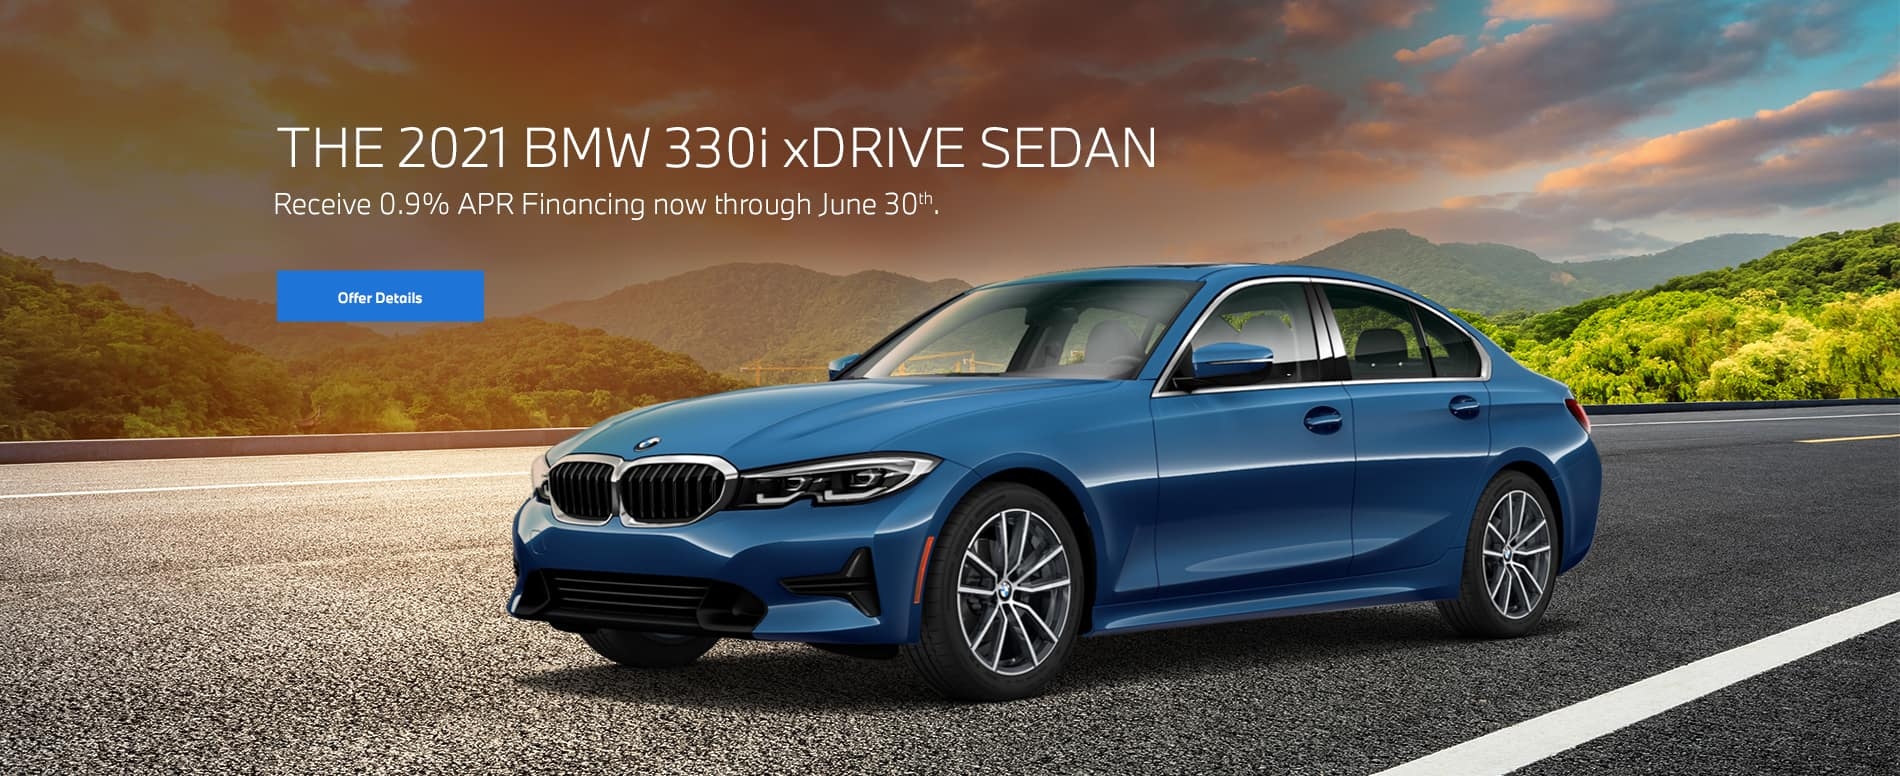 Phytonic Blue 3 Series on open road at dusk